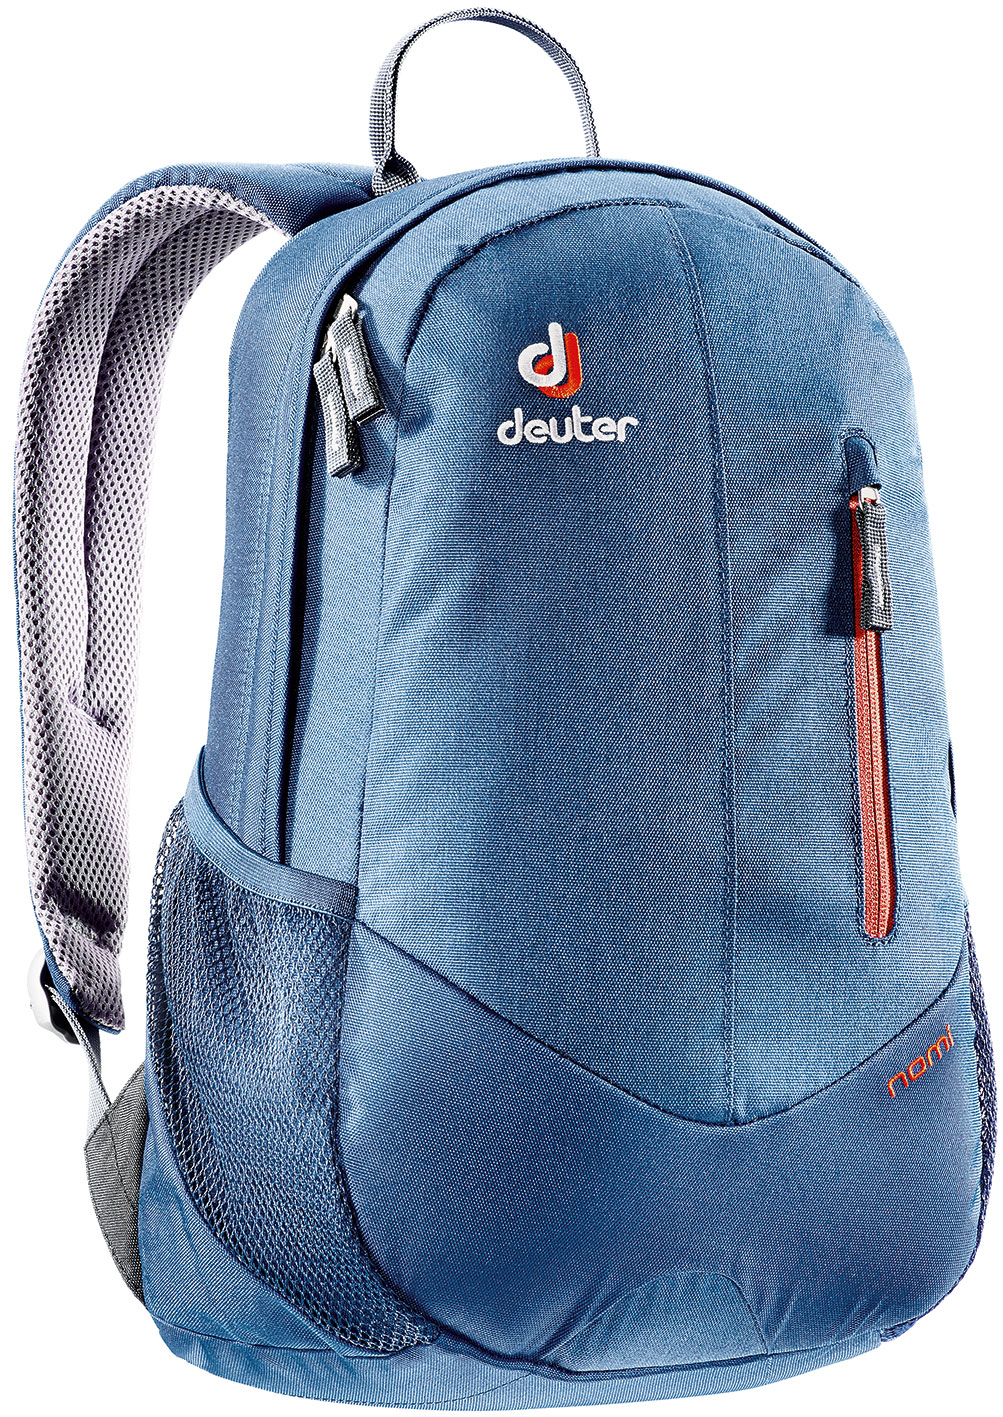 Deuter Nomi midnight dresscode-30